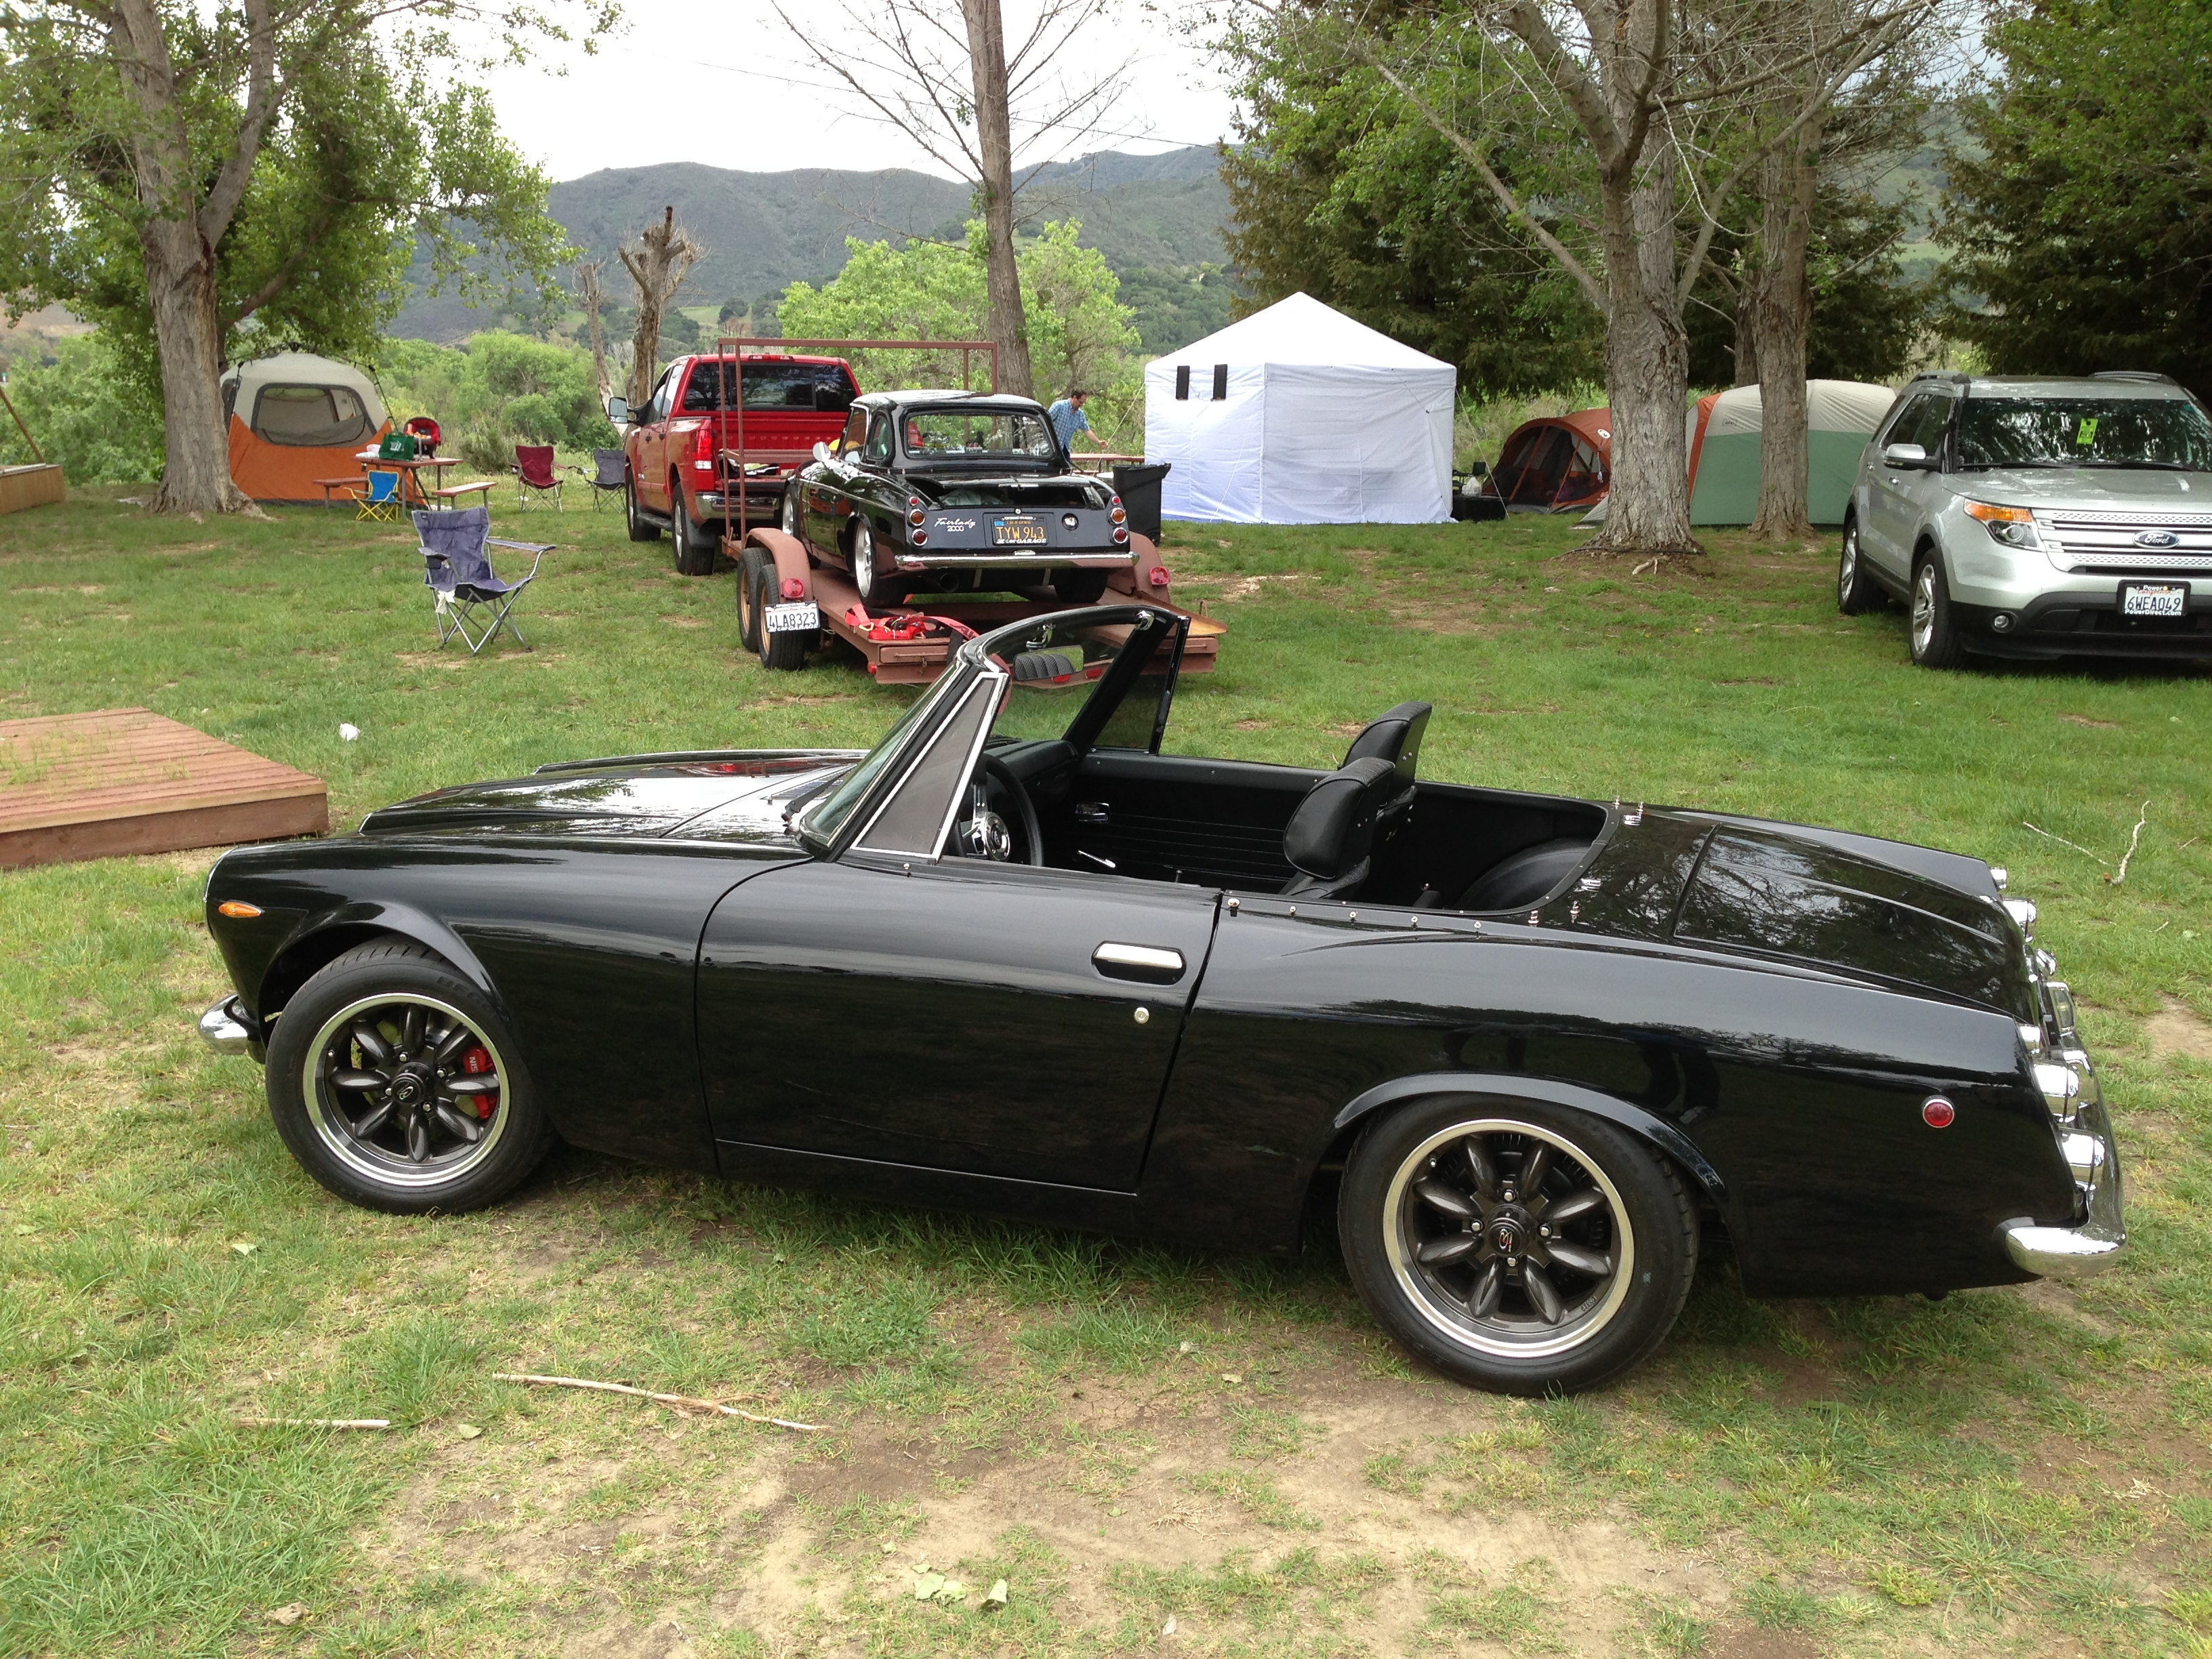 Z Car Blog 2014 April The Truck That It39s Being Installed Into Has Been Megasquirted By Mr Just Across Street From Our Campsite Was Friday Night Meet Greet At Mendenhalls Museum Of Gas Station Pumps This Venue Is Quite Amazing And A